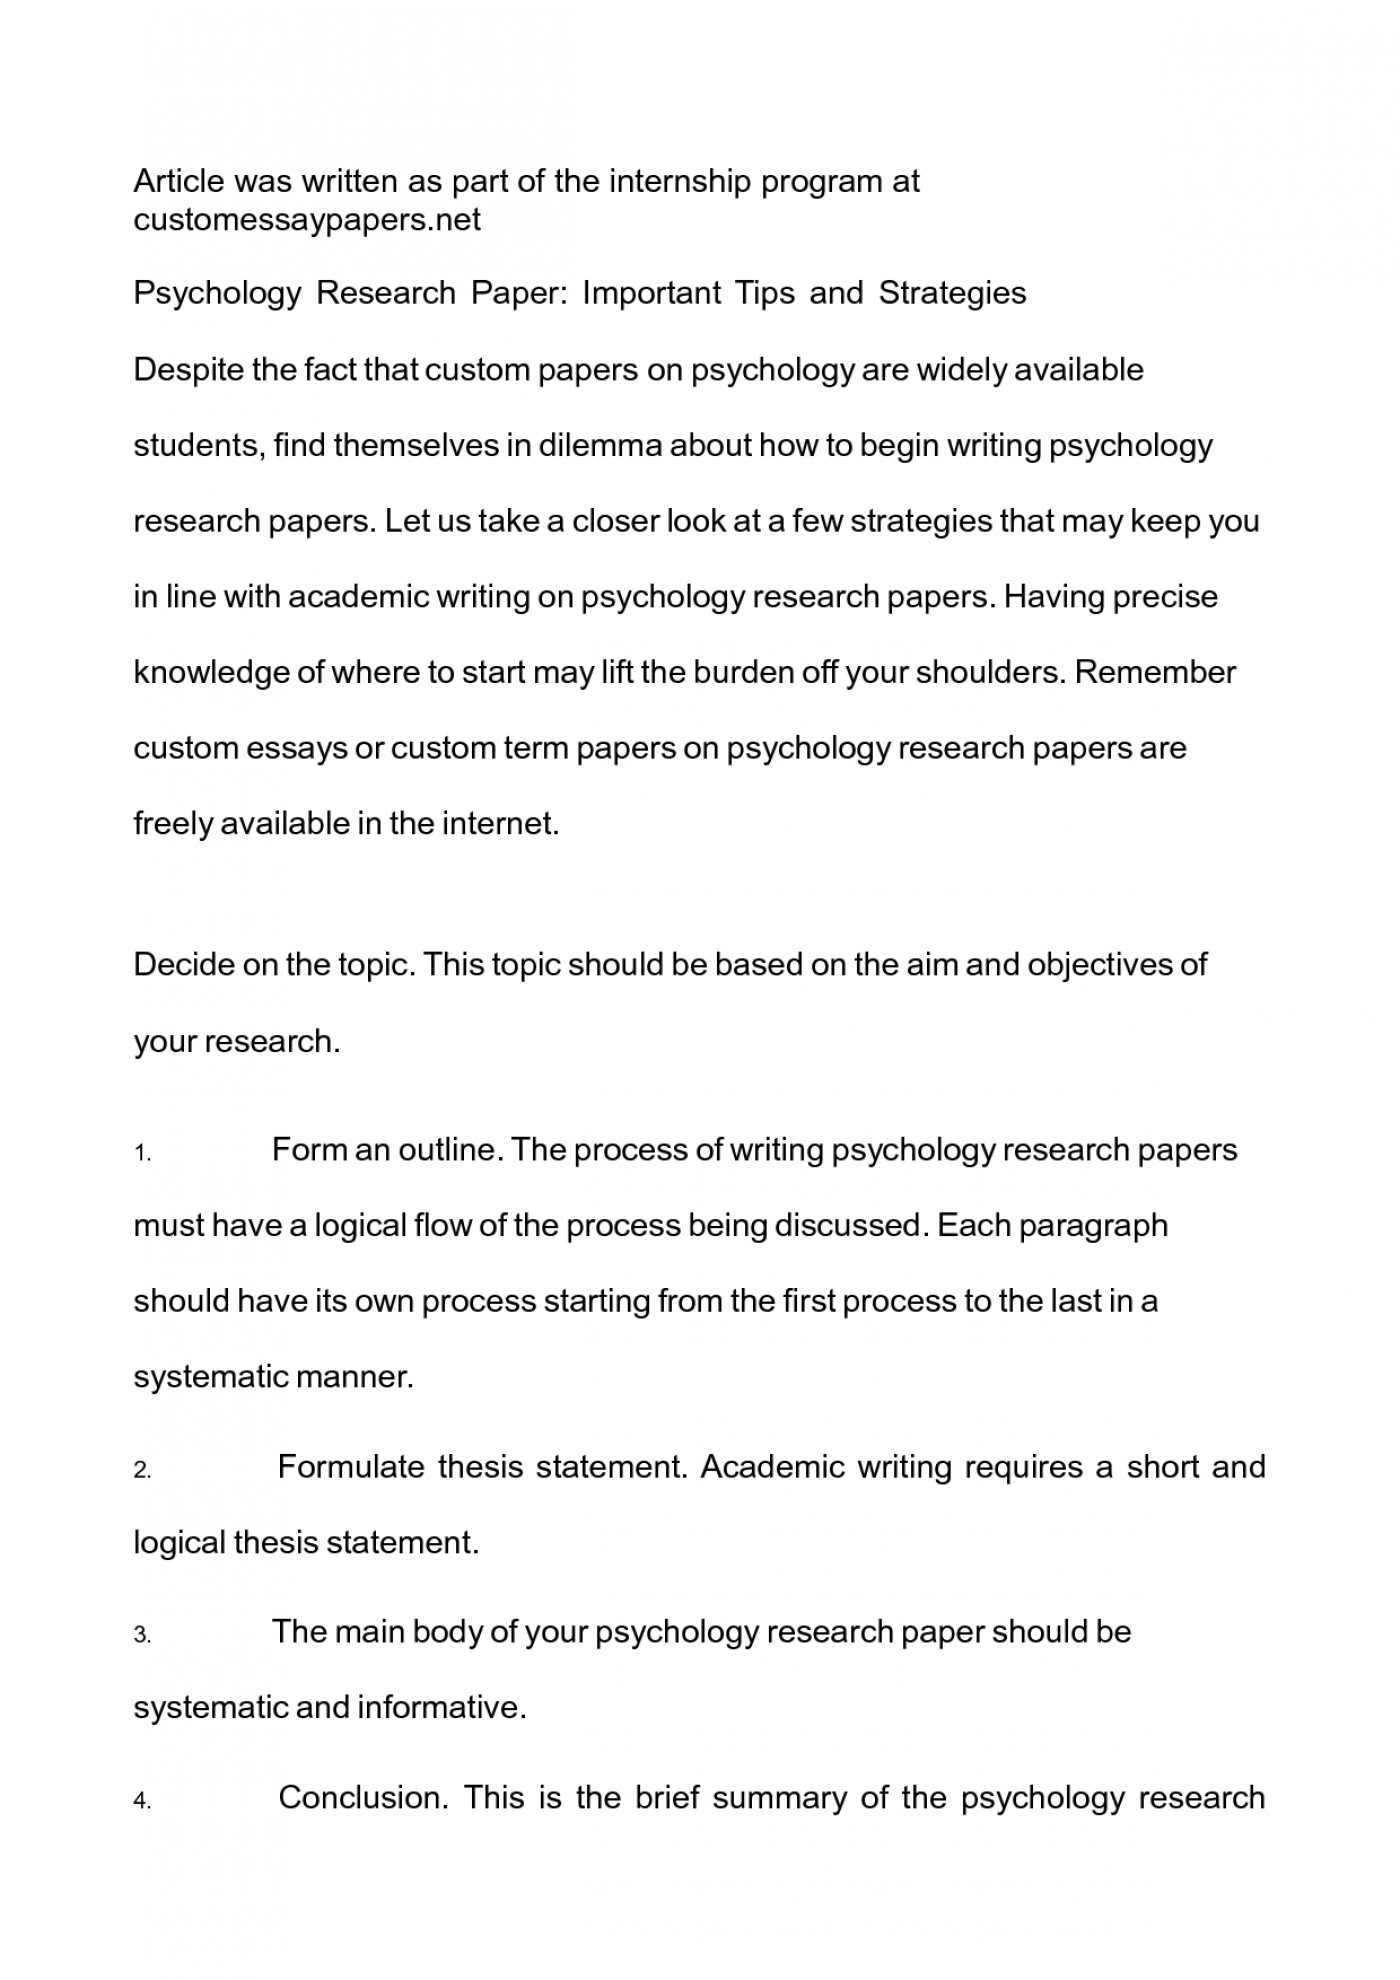 012 Research Paper Psychology Writing Services Topics College Awesome Students 1400